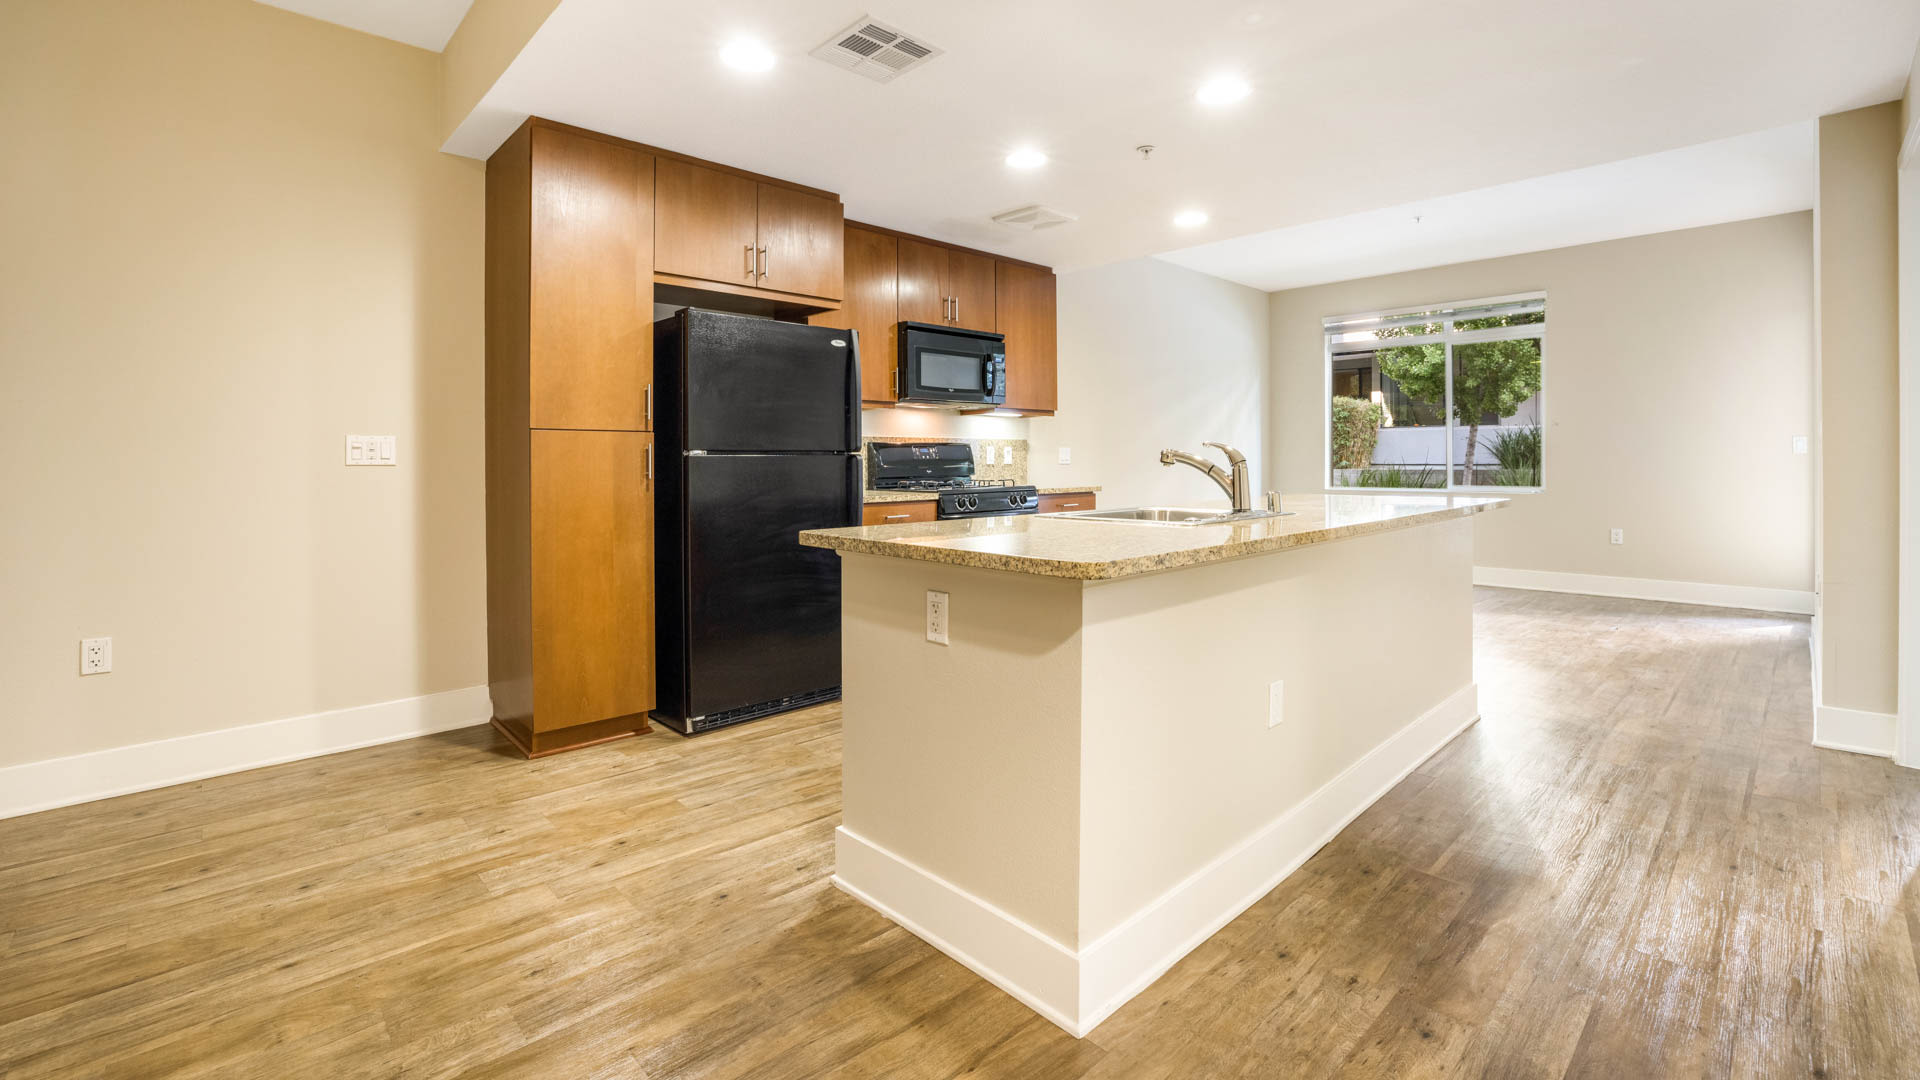 Westgate Apartments - Kitchen and Living Area